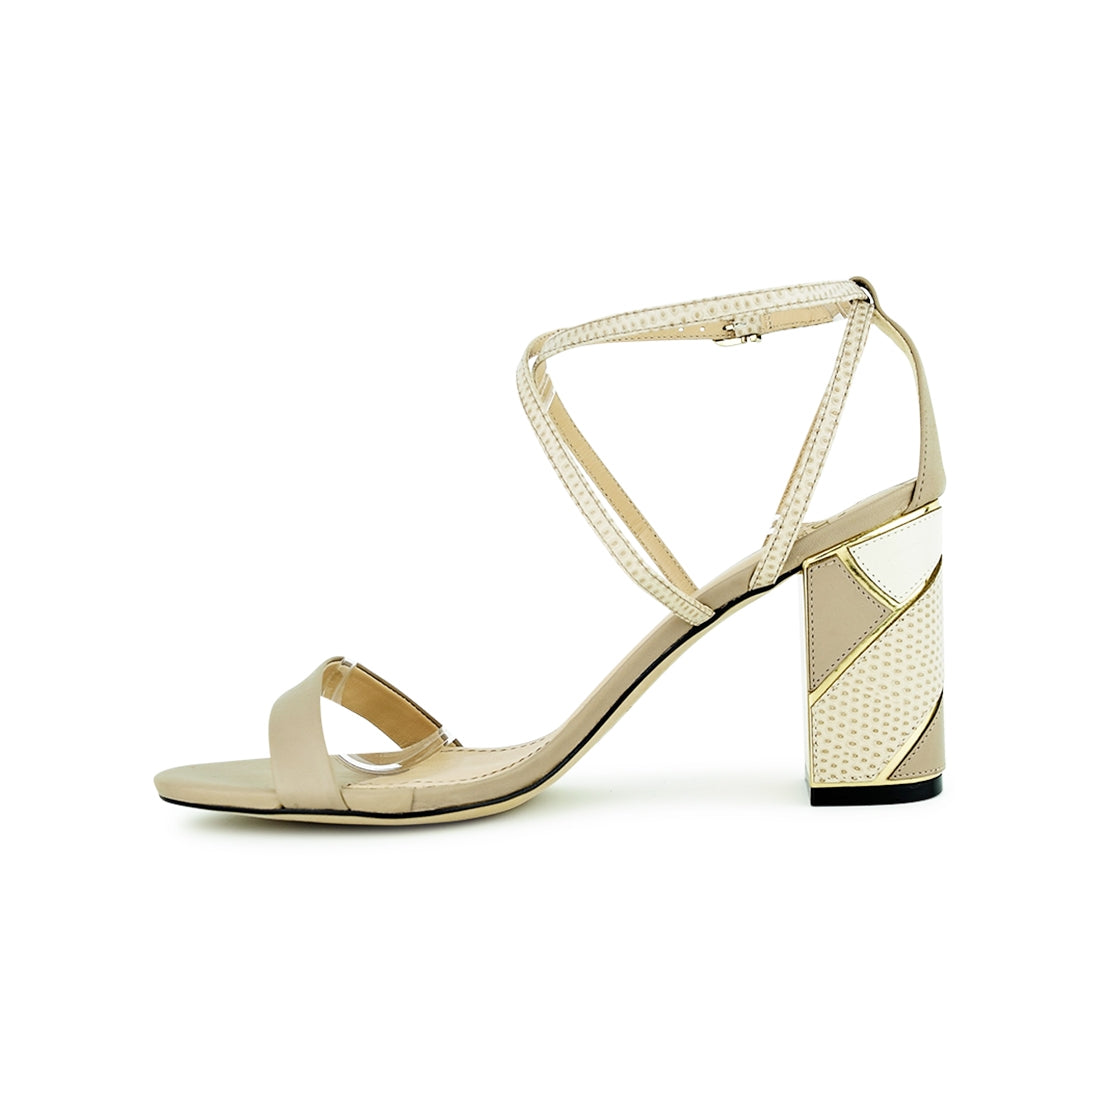 ANGELO - Piazza Grande Sandal Taupe Print